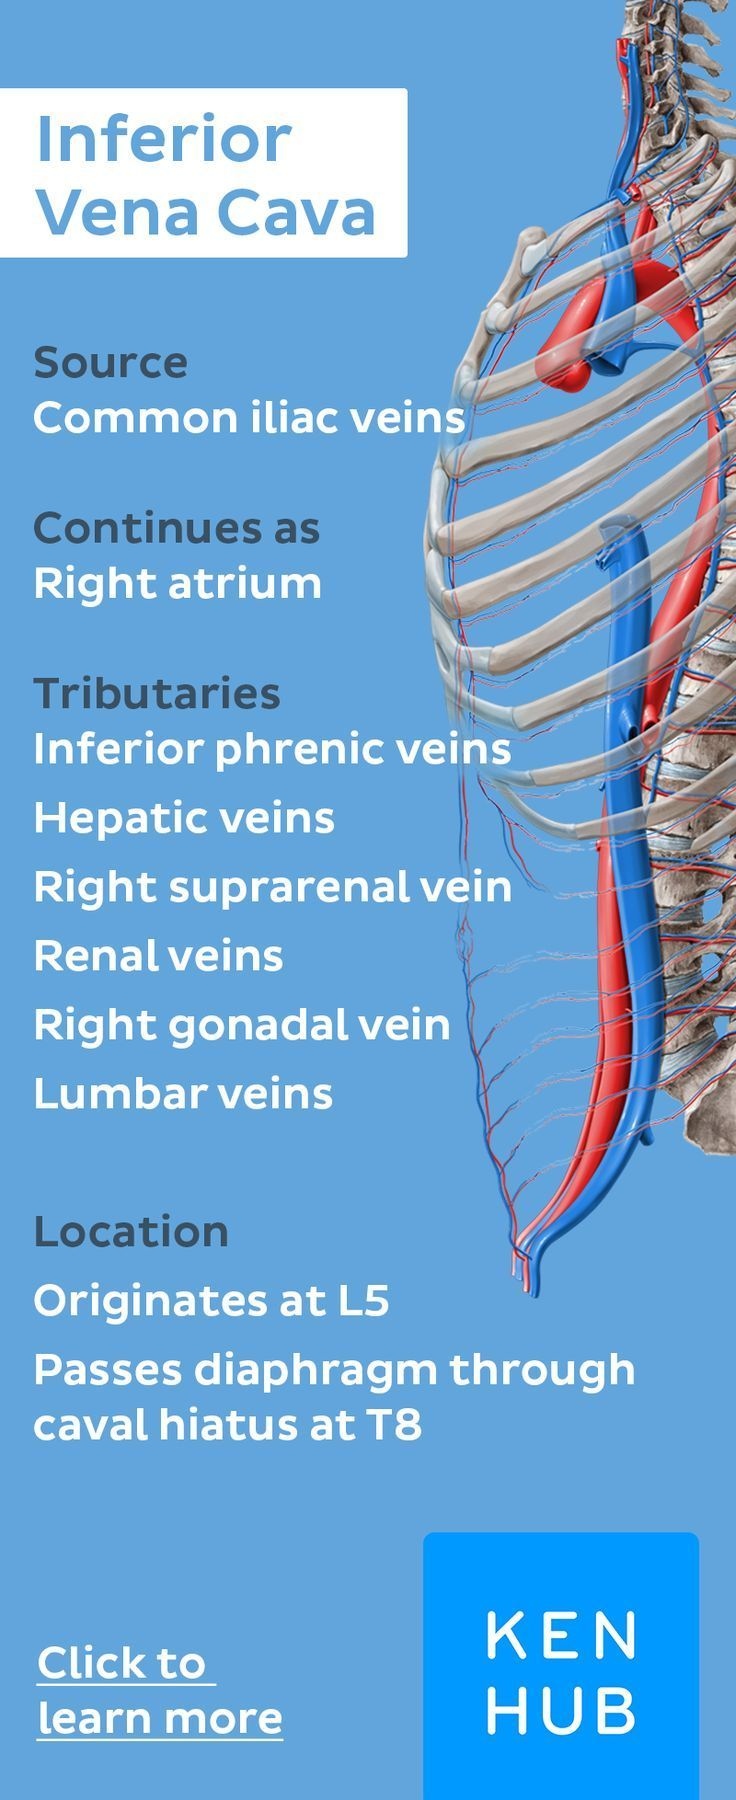 Inferior Vena Cava | PTA | Pinterest | Anatomy, Medical and Med school